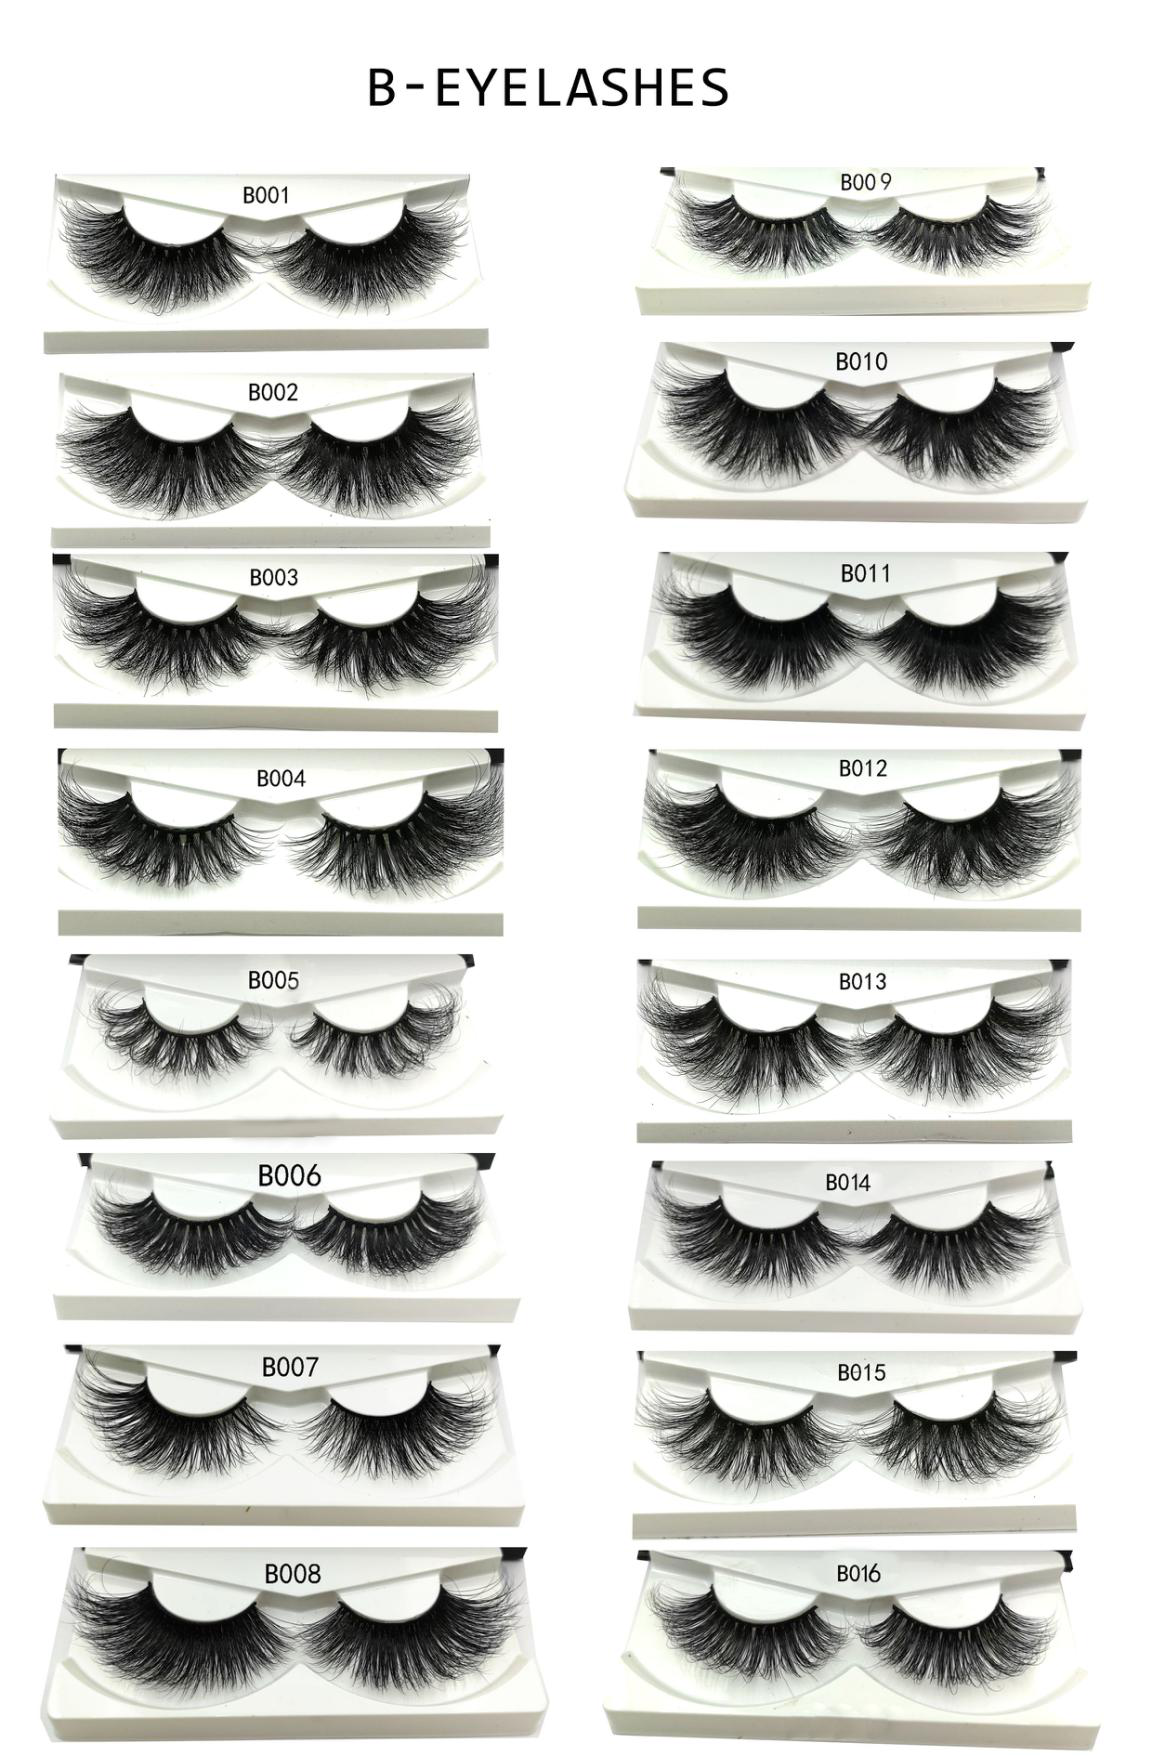 The 25mm 3d mink lashes and custom box eyelashes vendor